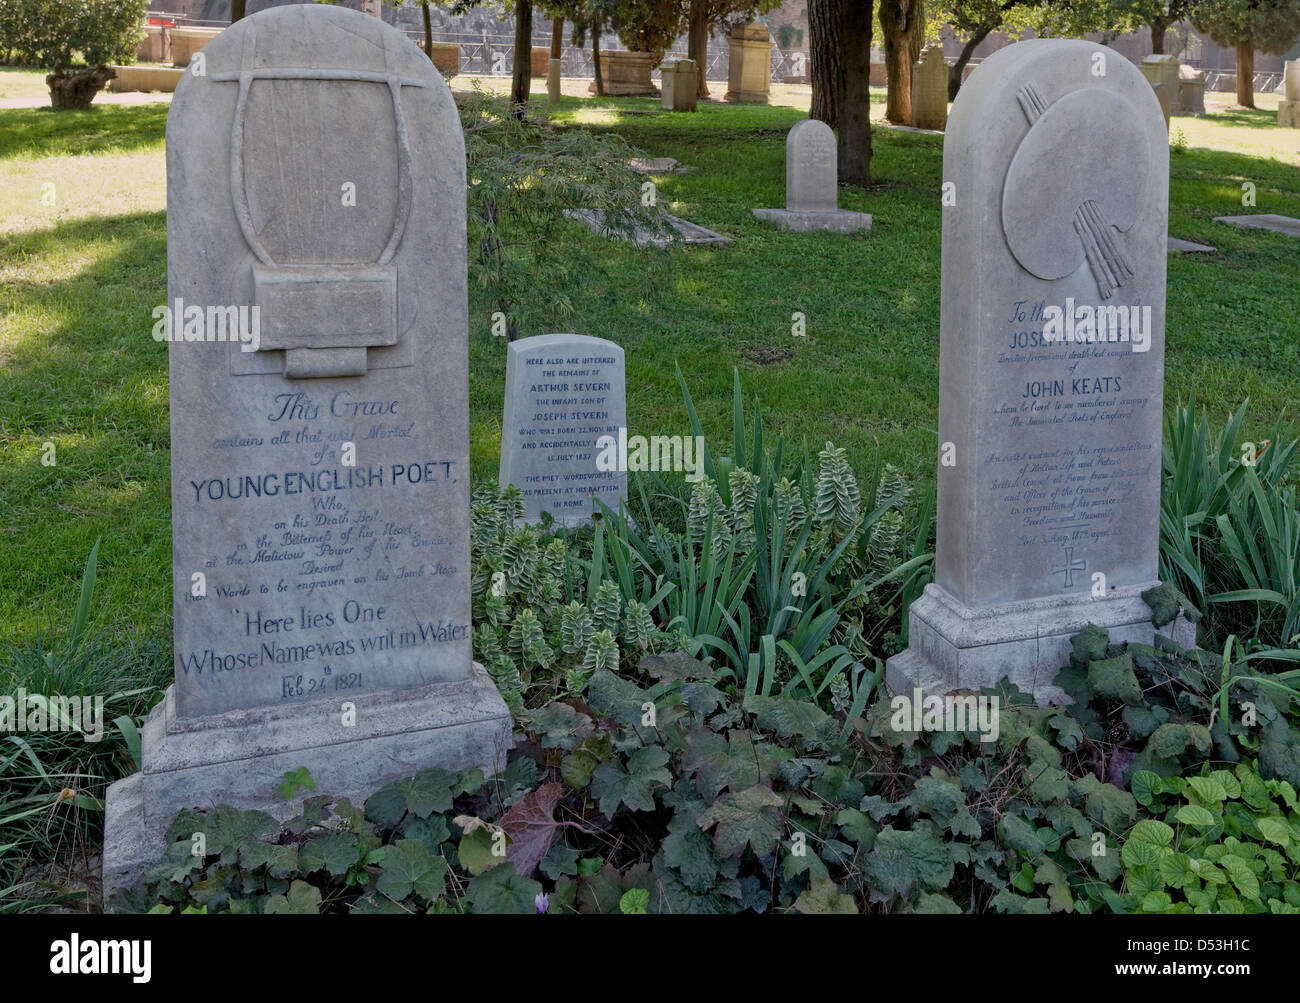 Gravestone of John Keats and his friend Joseph Severn in the Protestant Cemetery of Rome. - Stock Image